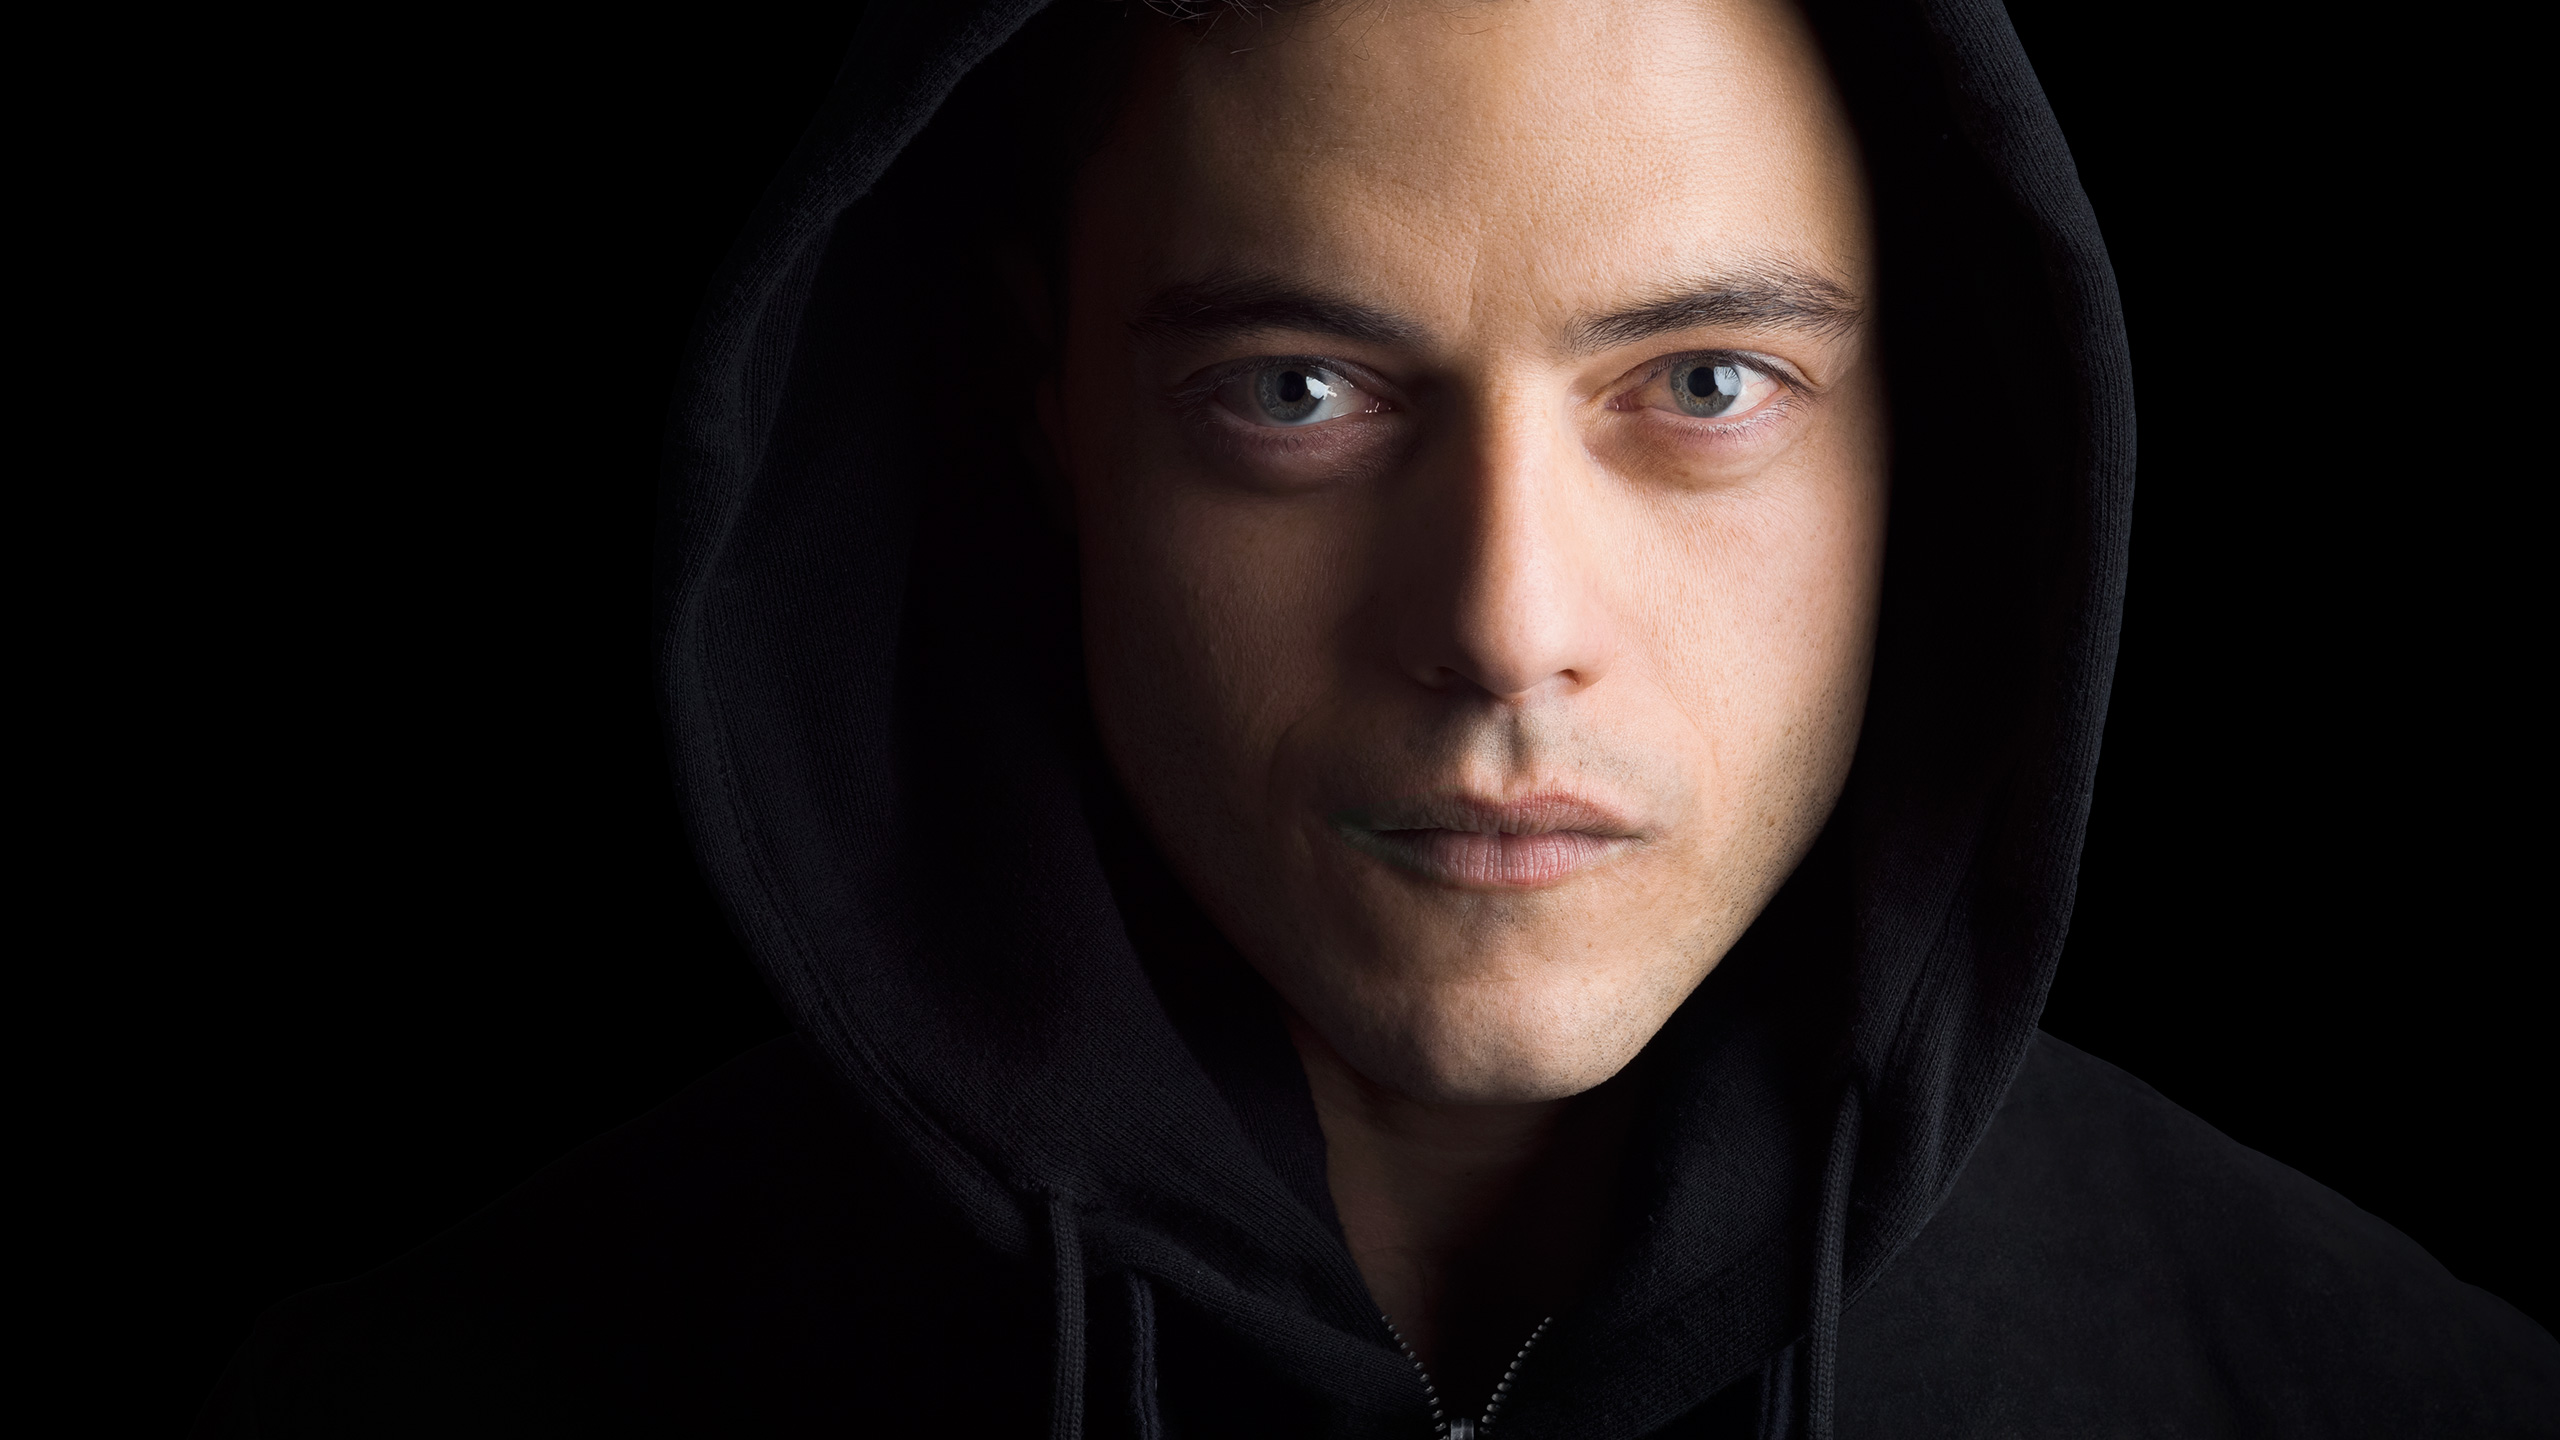 Mr. Robot and the Unbearable Pace of Real Change